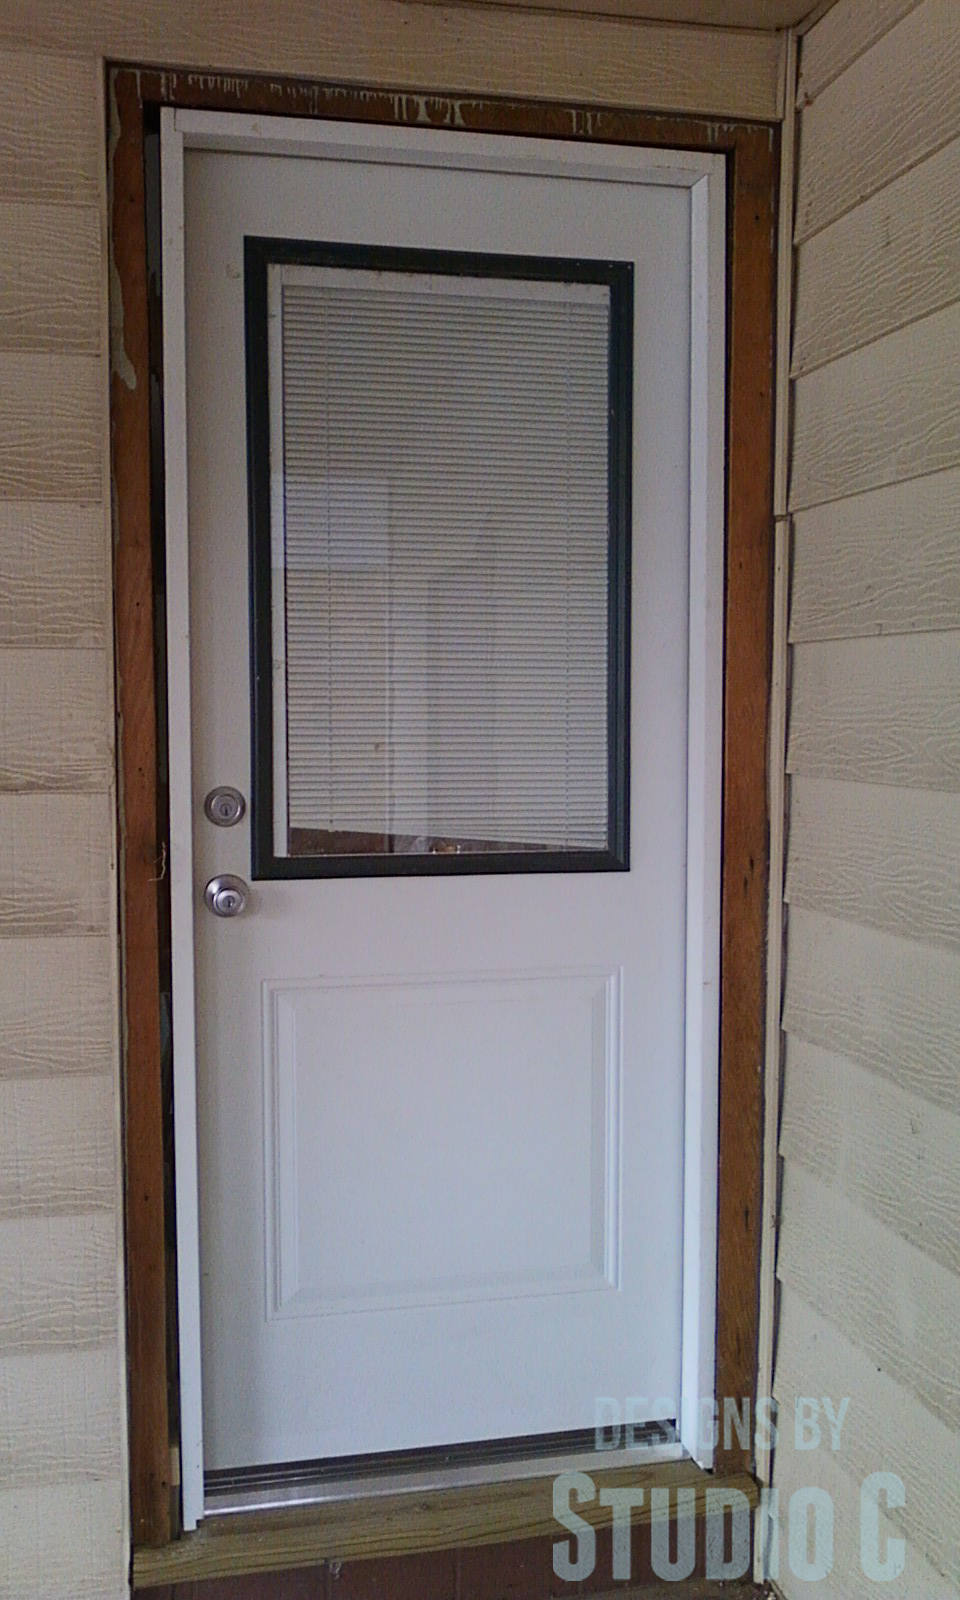 Replacing an exterior door designs by studio c for Entry door installation